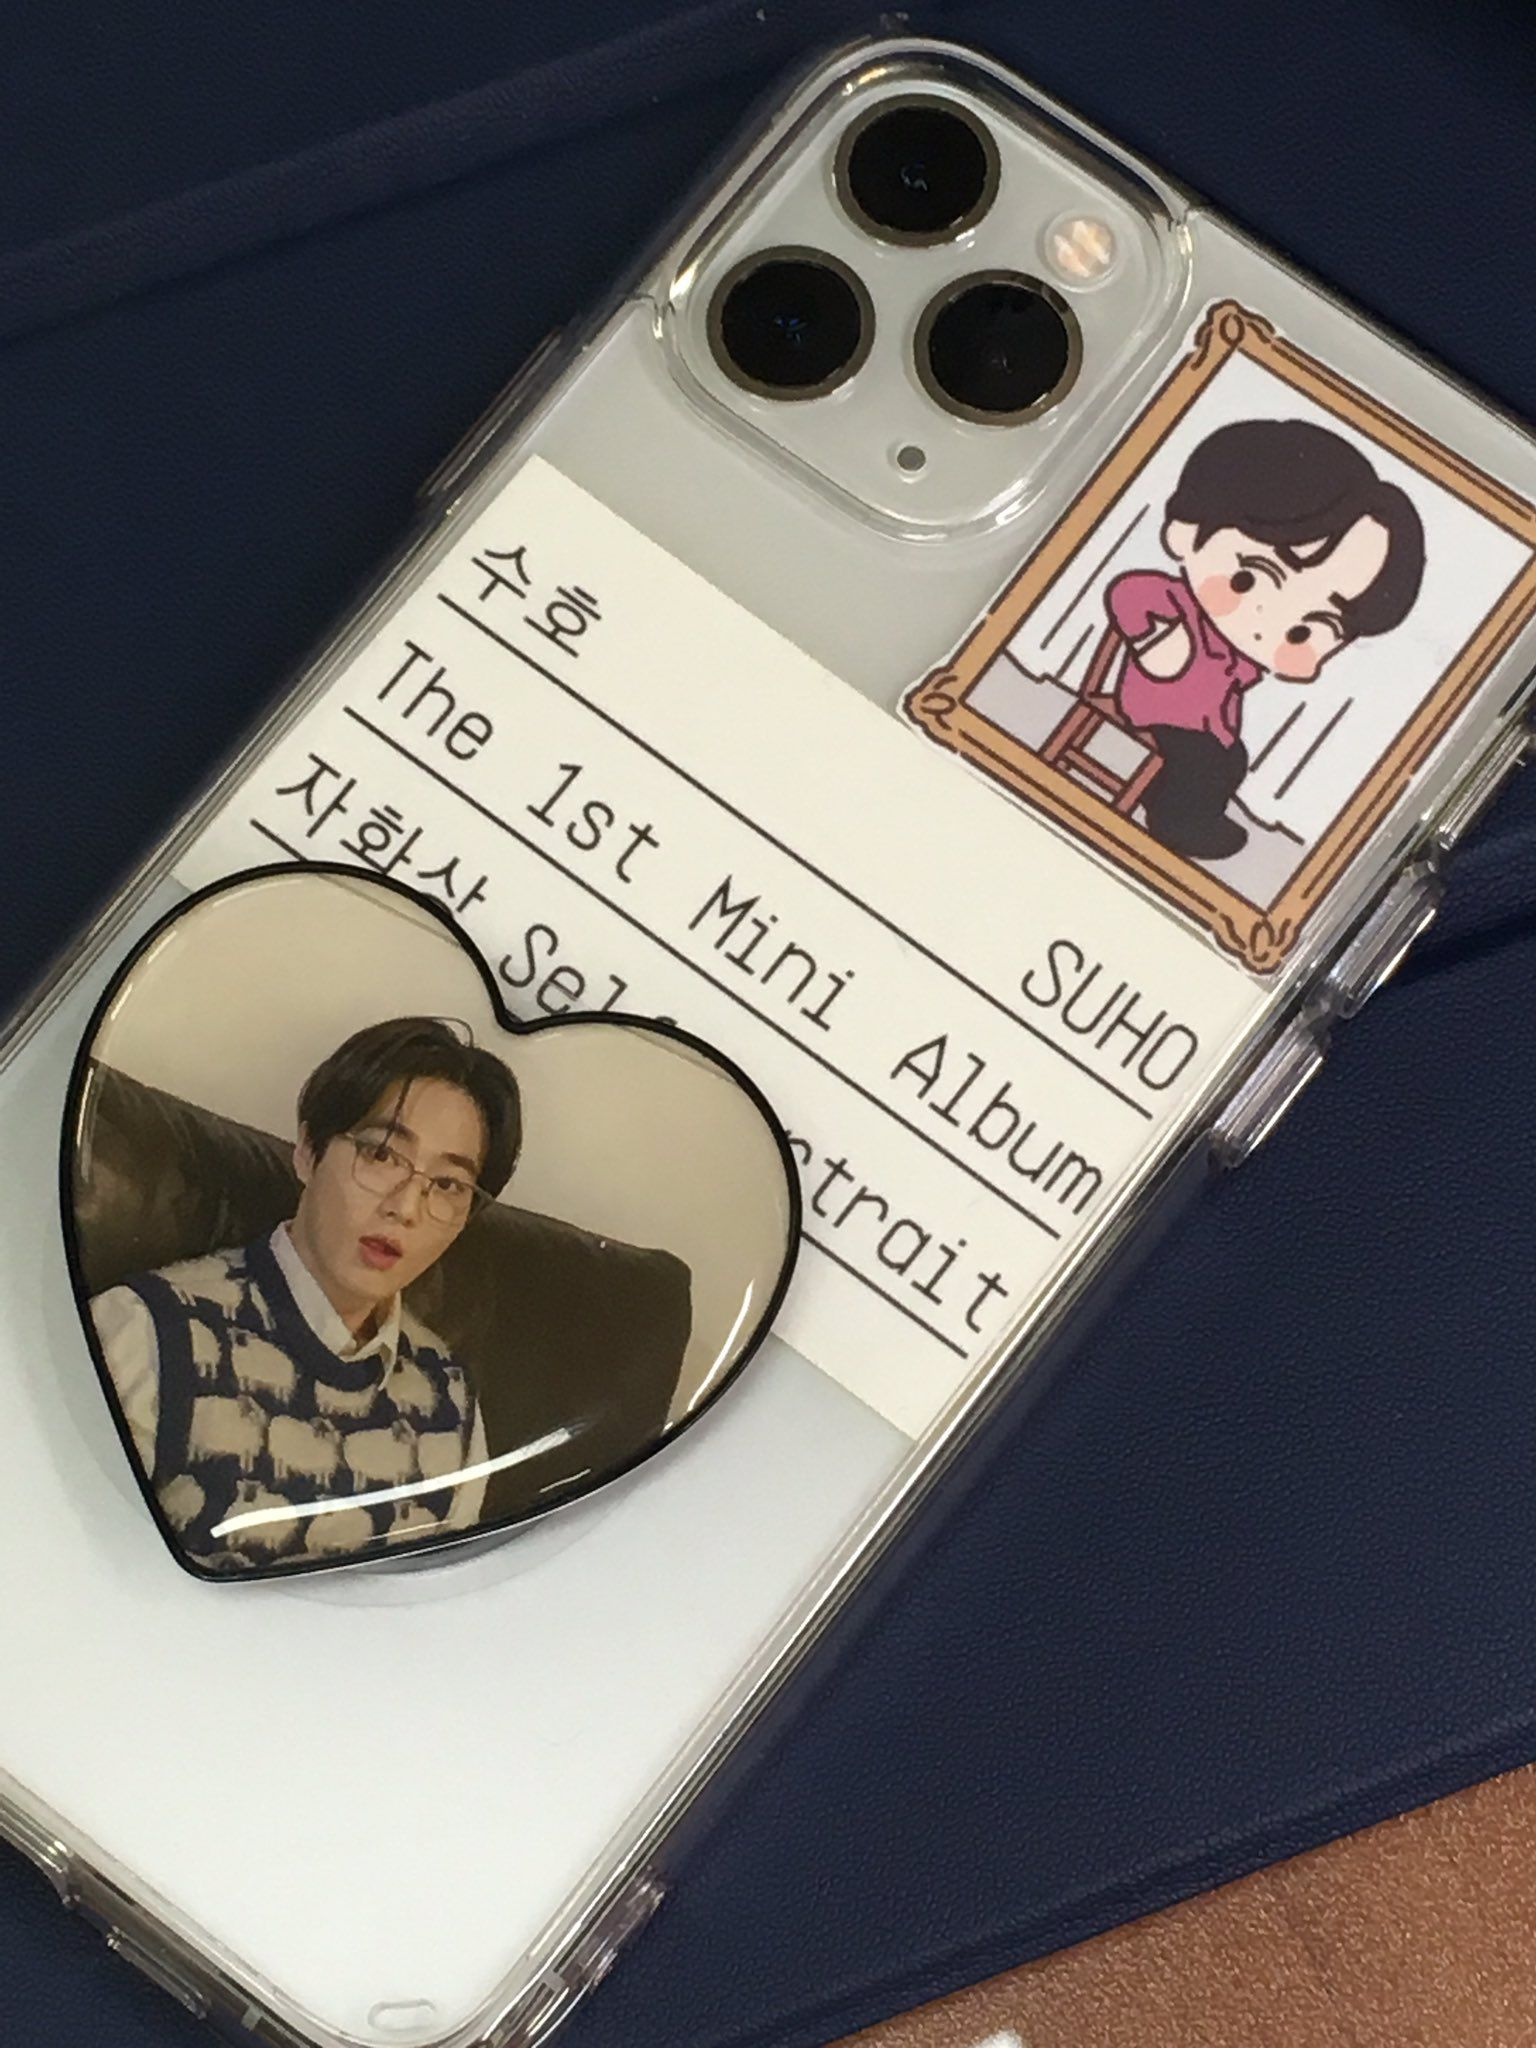 Pin By Loeyssi Park On Exo Phone Caseˊˎ Kpop Phone Cases Exo Phone Case Casetify Iphone Case